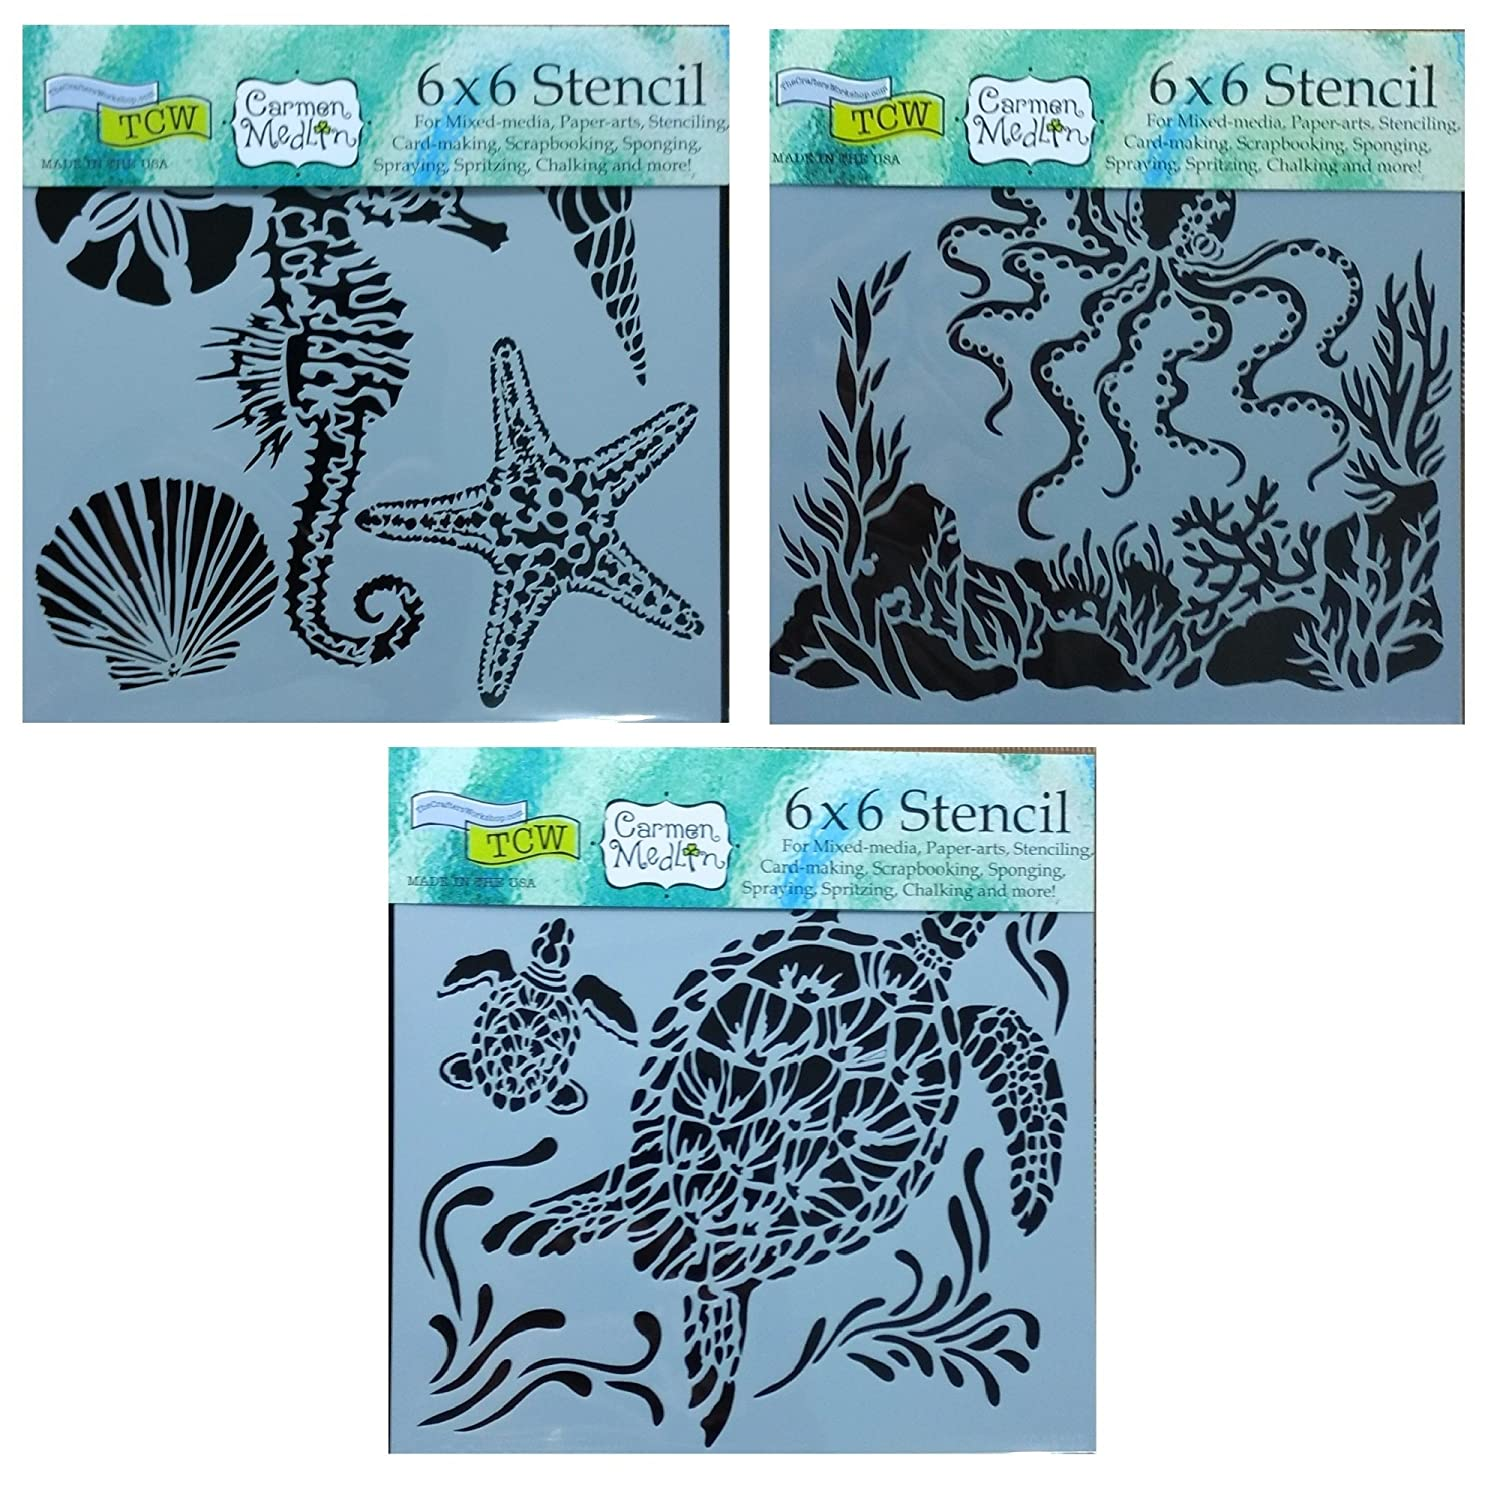 3 Crafters Workshop Mixed Media Stencils Set For Arts Card Making Journaling Scrapbooking 6 Inch X 6 Inch Templates Sea Creatures Octopus